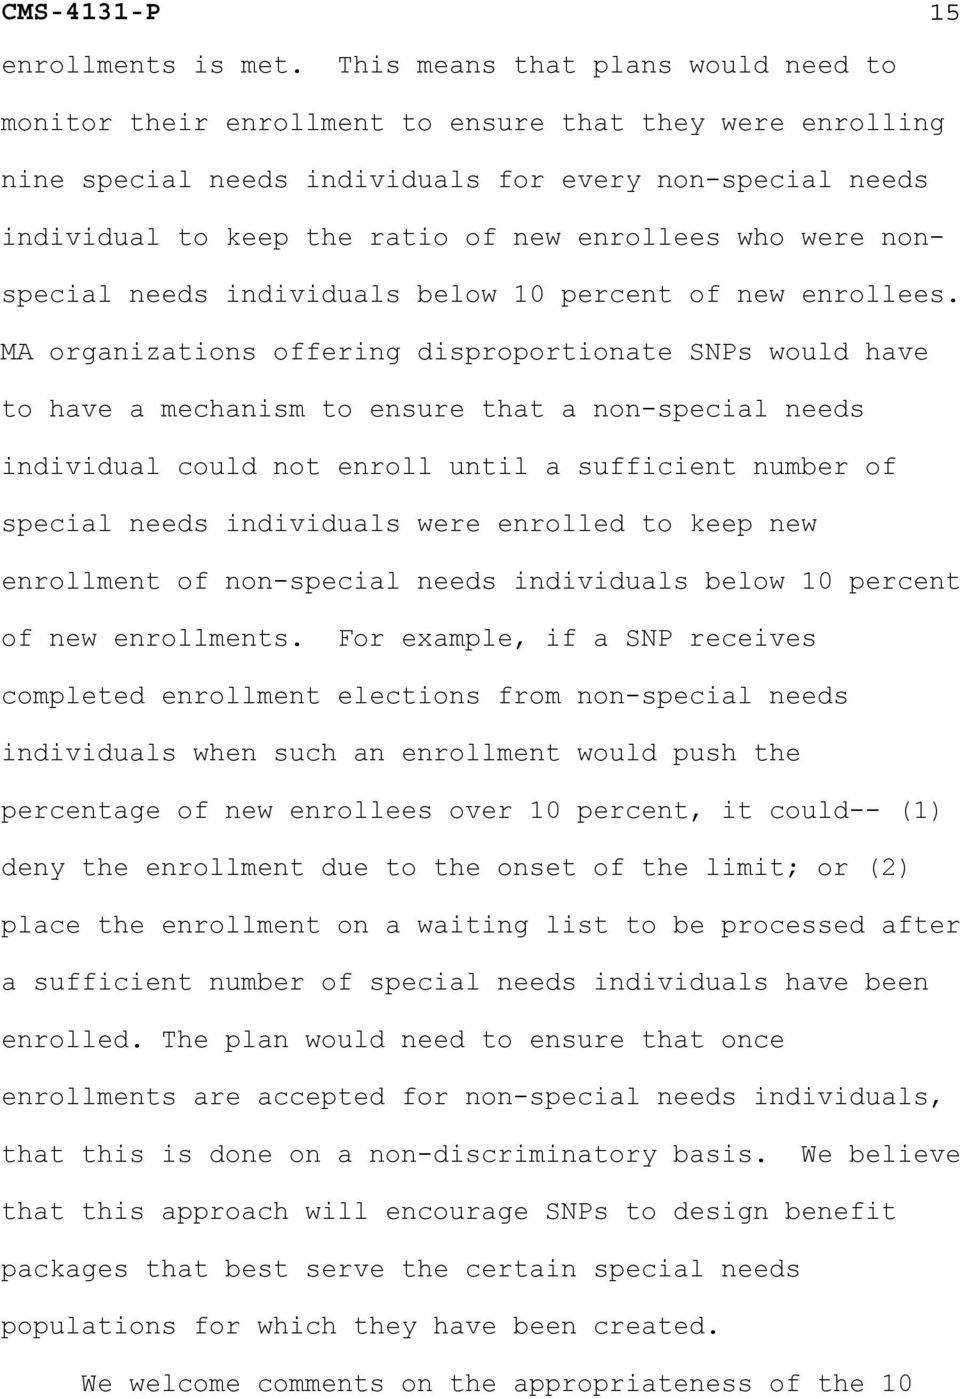 enrollees who were nonspecial needs individuals below 10 percent of new enrollees.